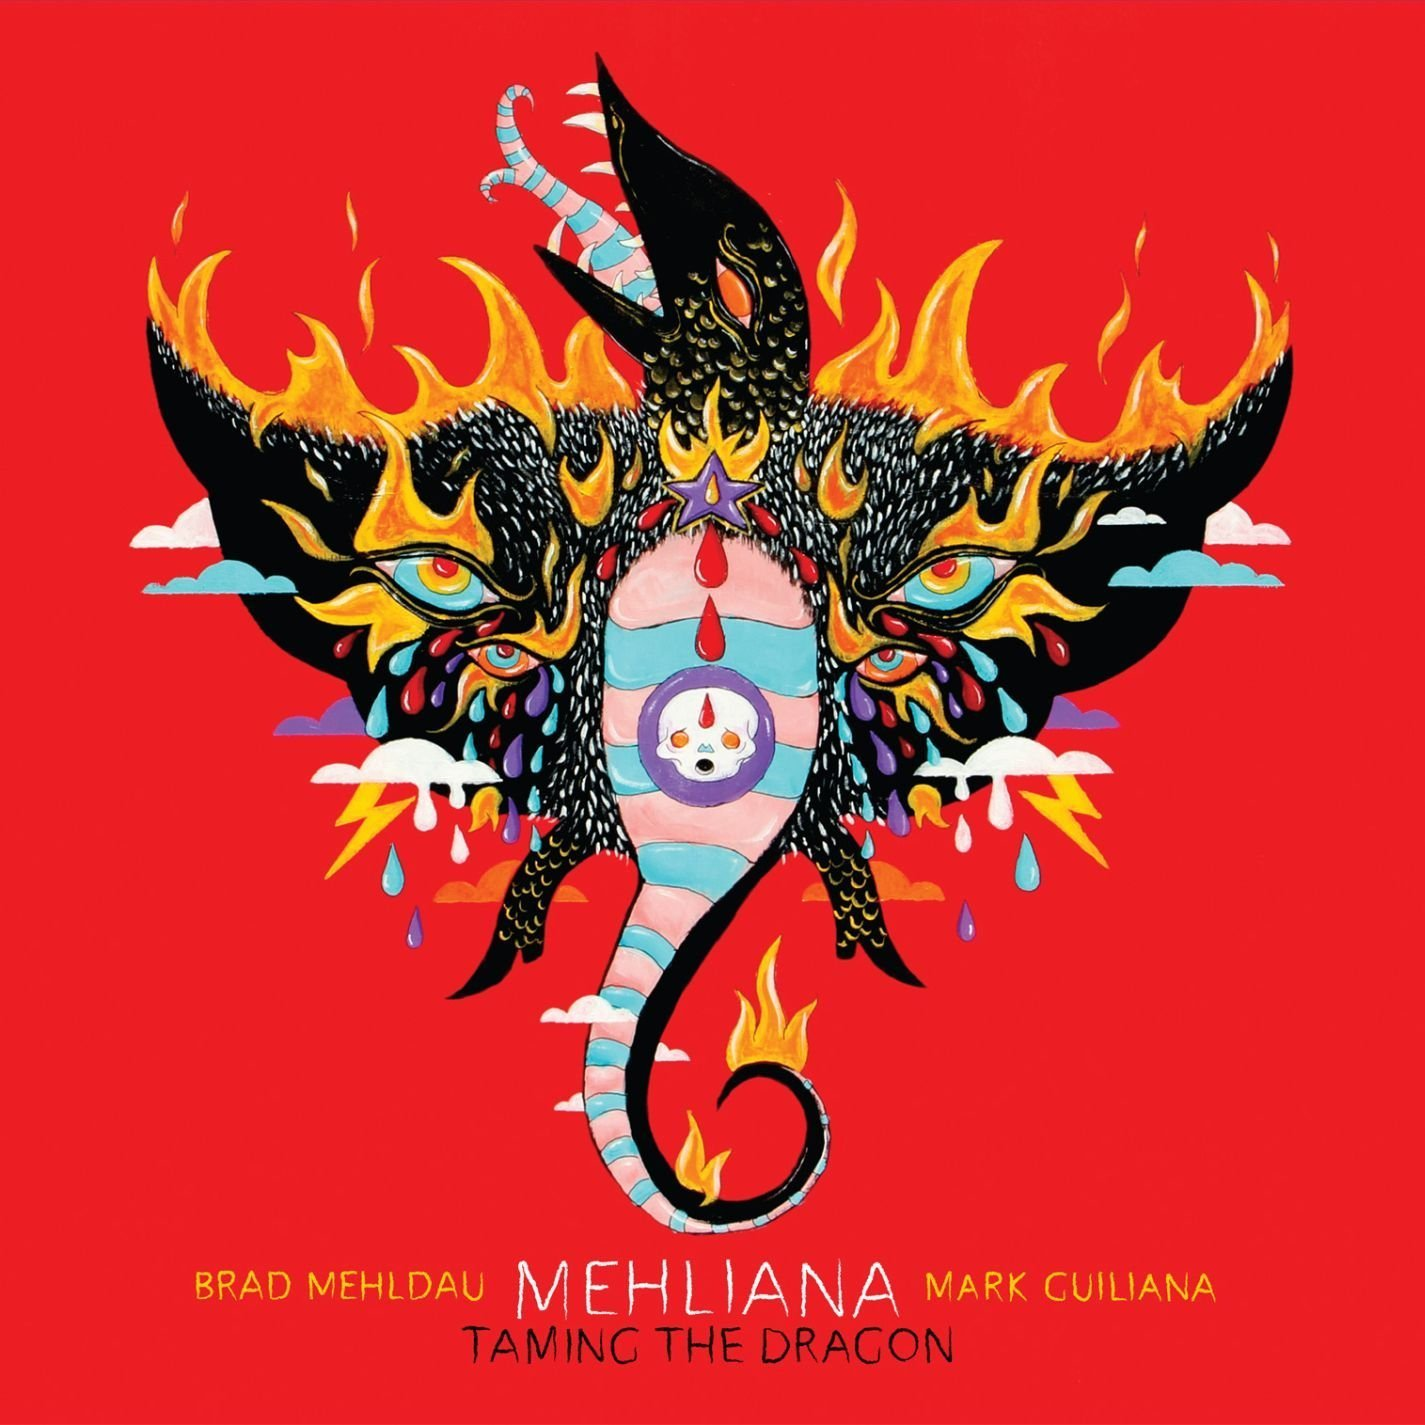 Brad Mehldau & Mark Guiliana: Mehliana - Taming the dragon (2014)